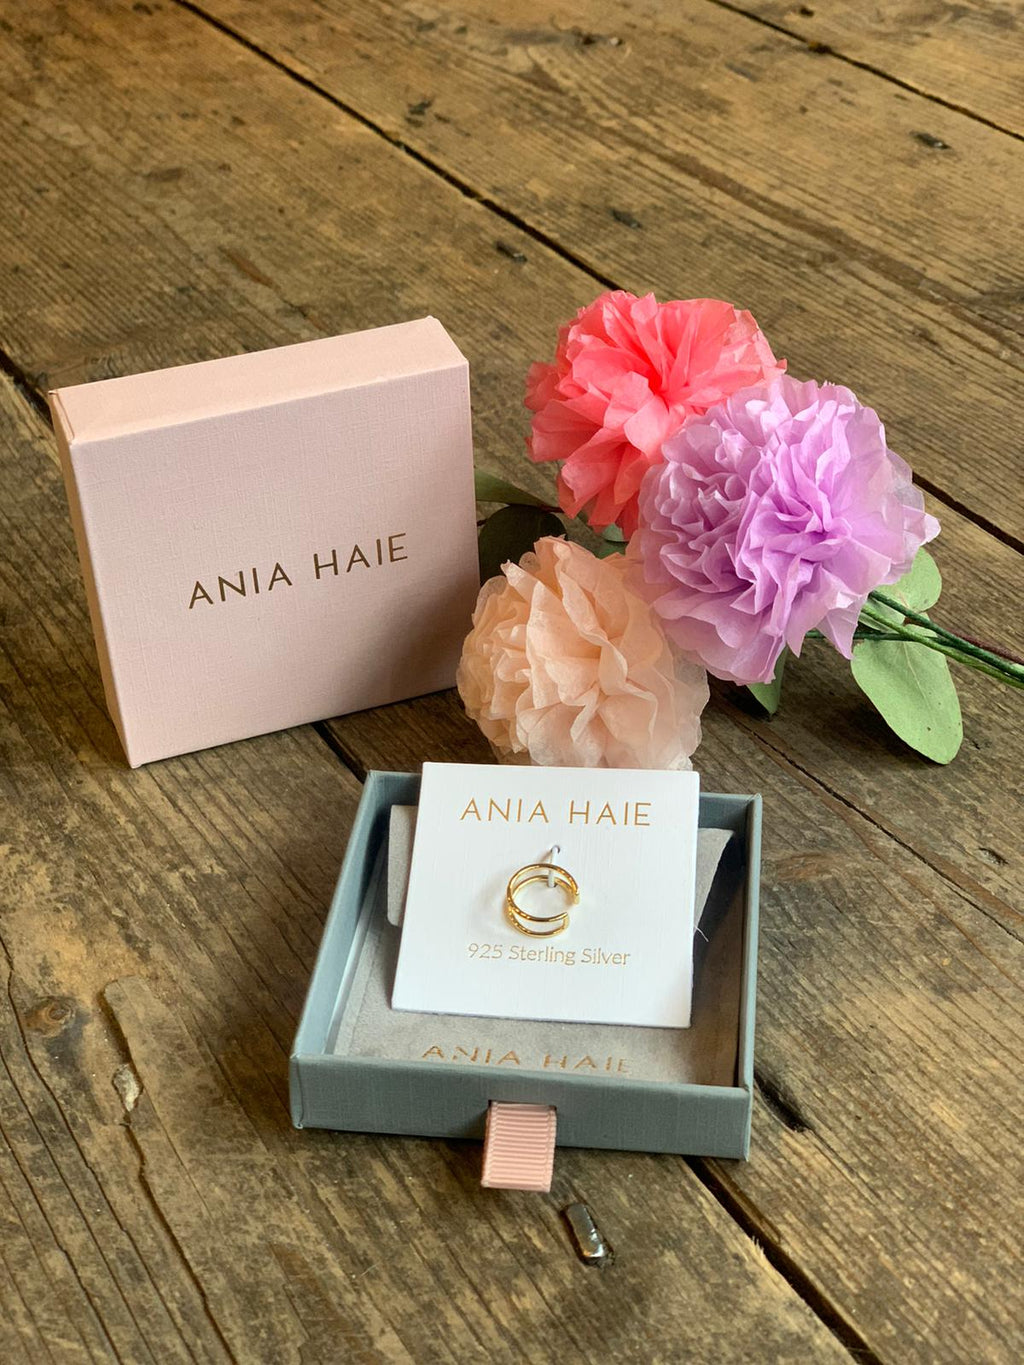 Mercantile Ania Haie Small Gift Box - The Mercantile London